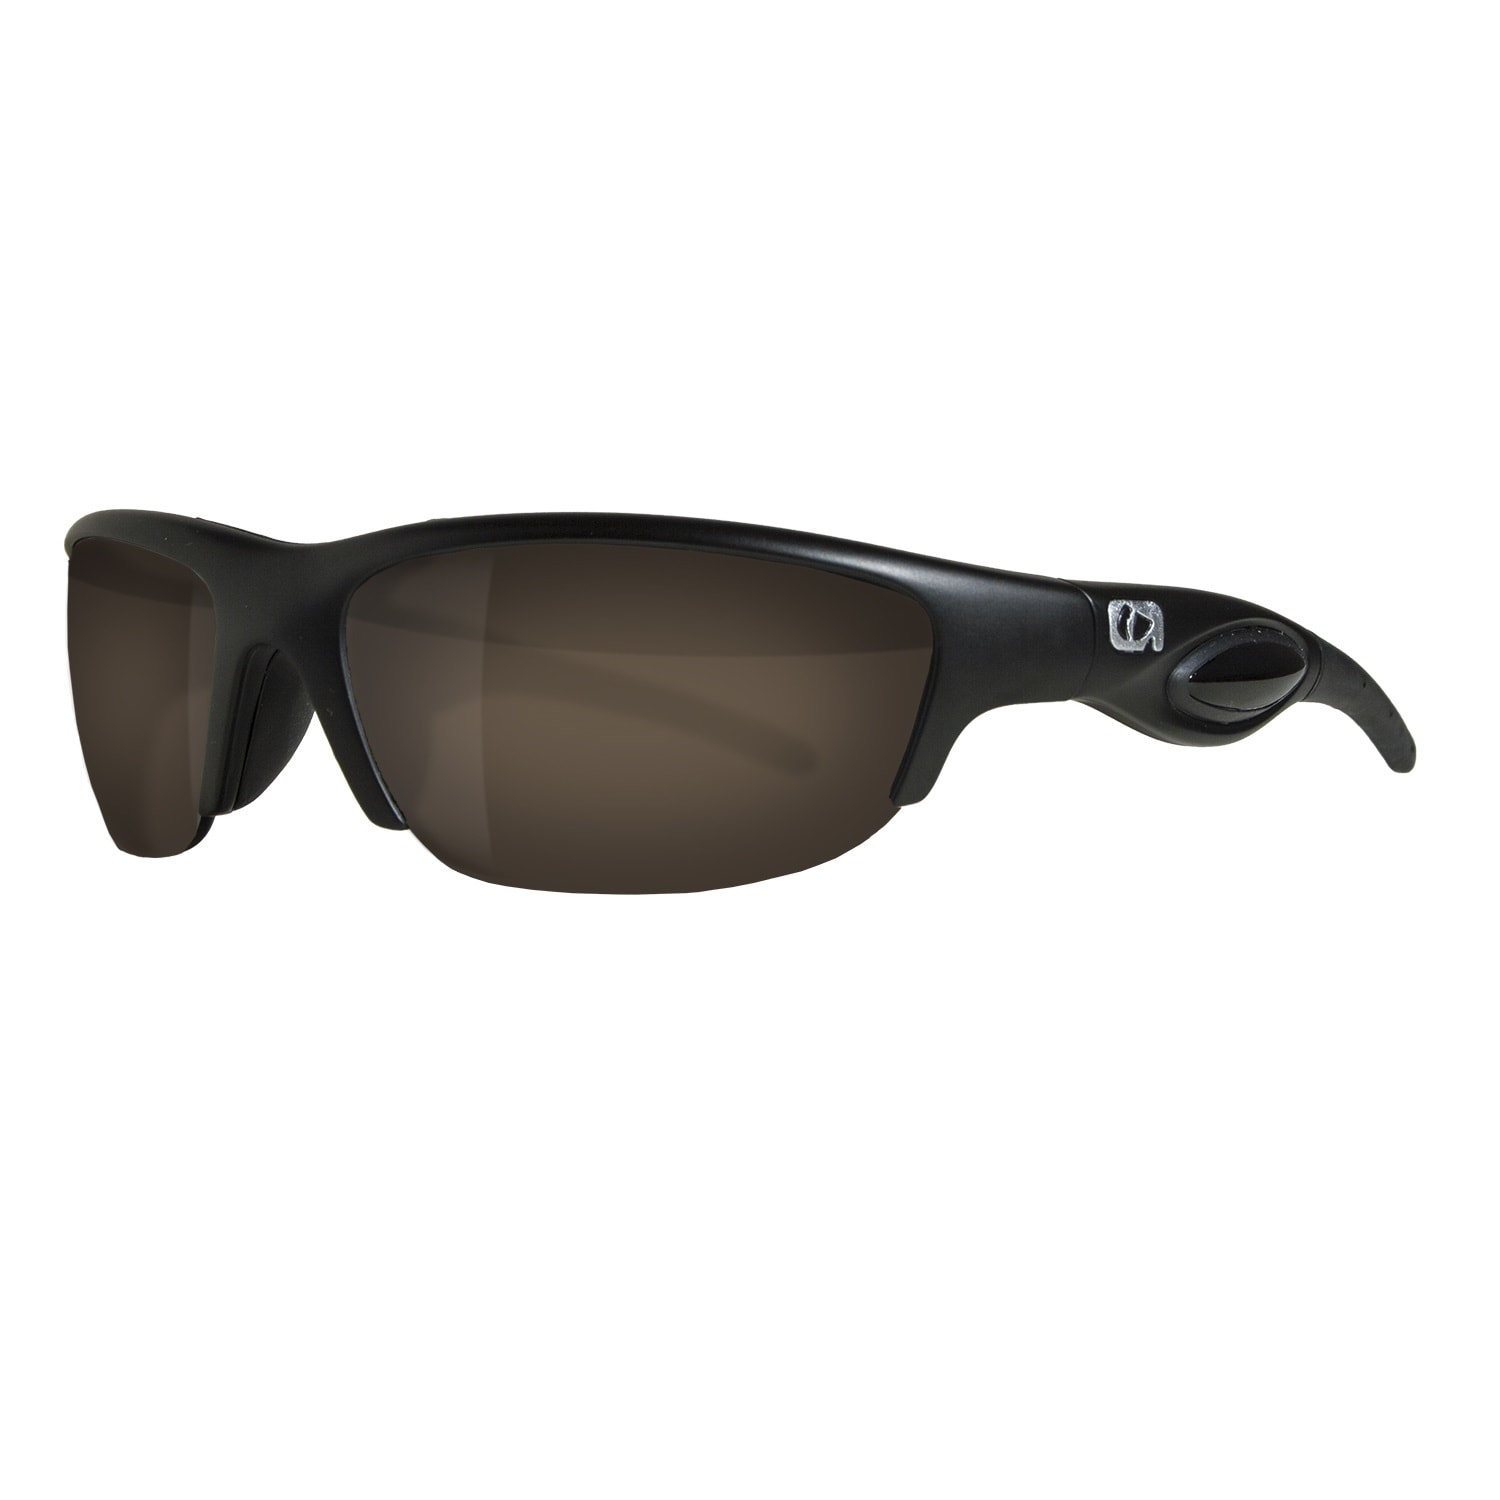 08523faa60 Shop Amphibia Hydra Sunglasses - Free Shipping Today - Overstock.com -  9918150